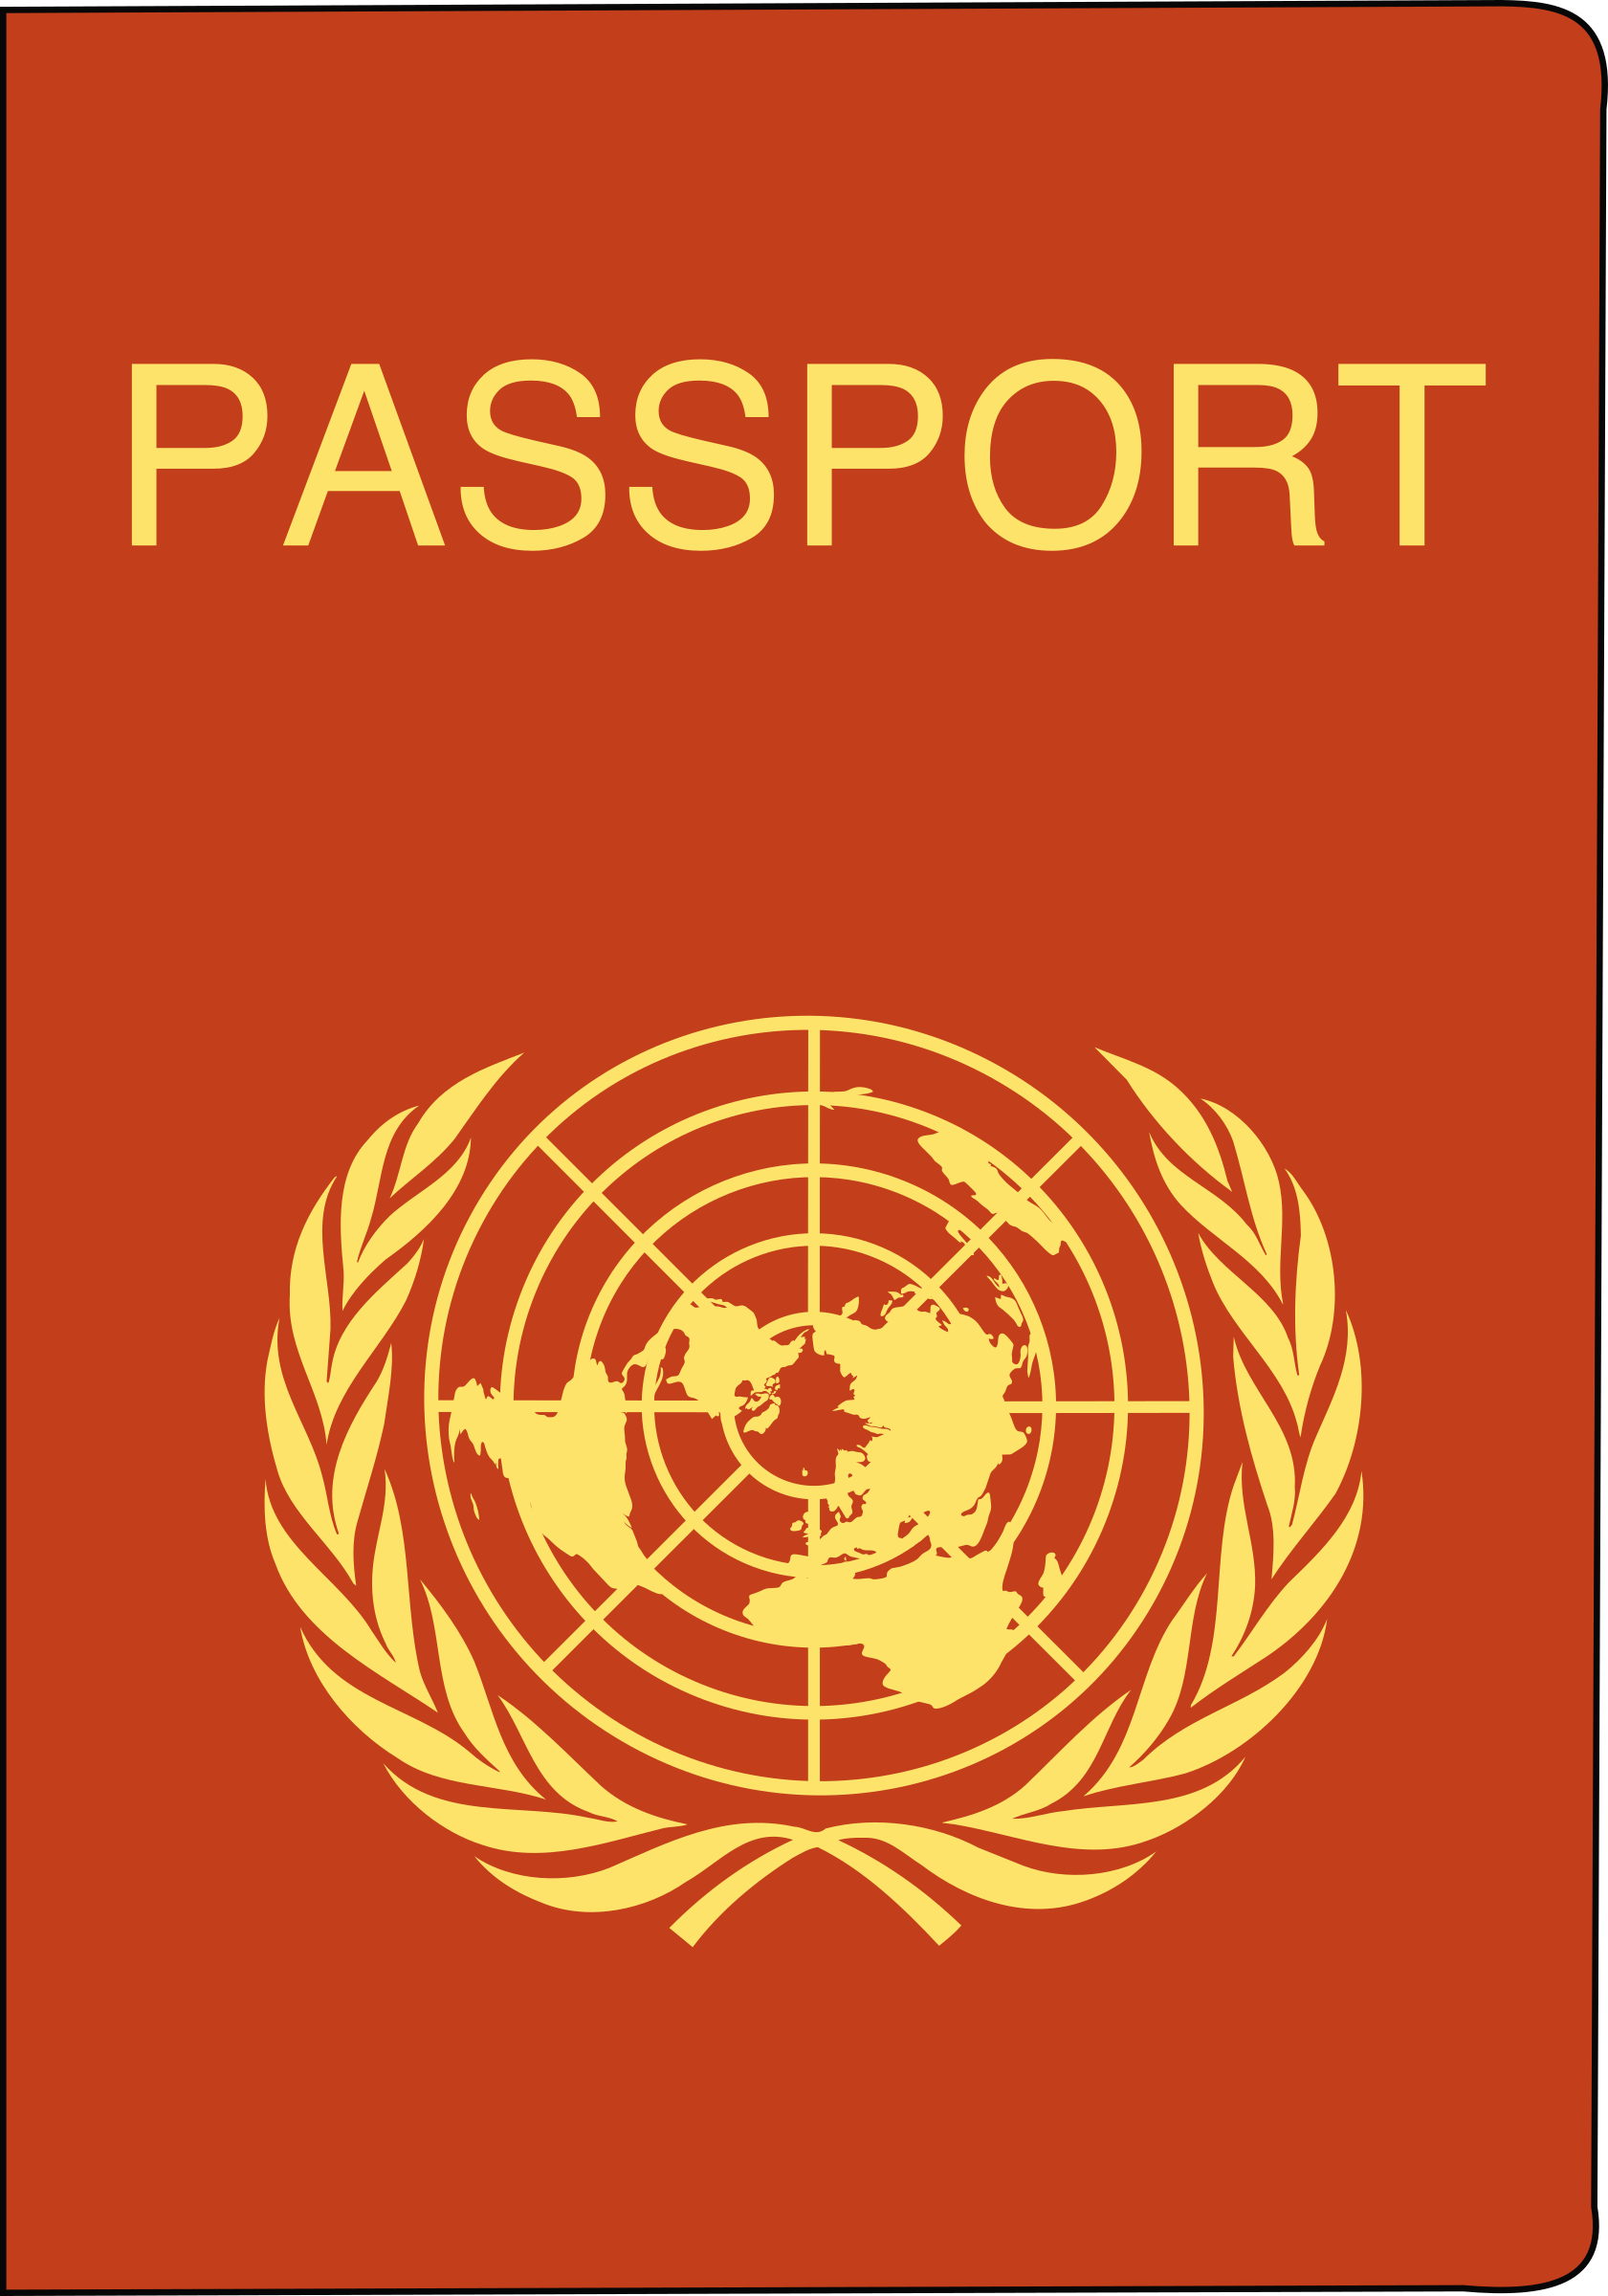 Passport cover clipart banner royalty free download Passport Clipart | Clipart Panda - Free Clipart Images banner royalty free download